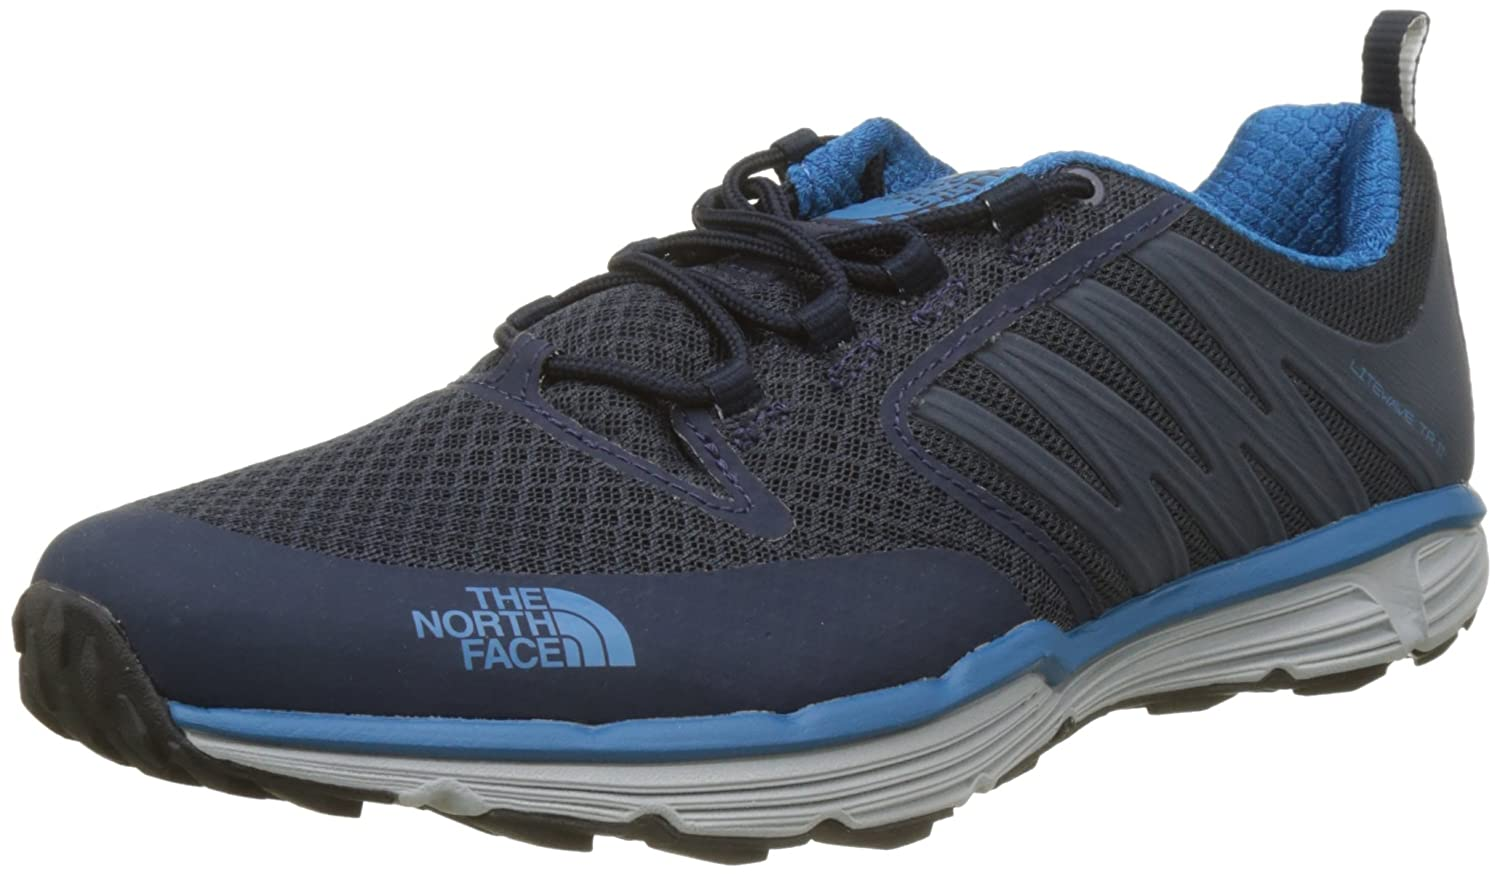 THE NORTH FACE Herren Litewave Tr Ii Laufschuhe